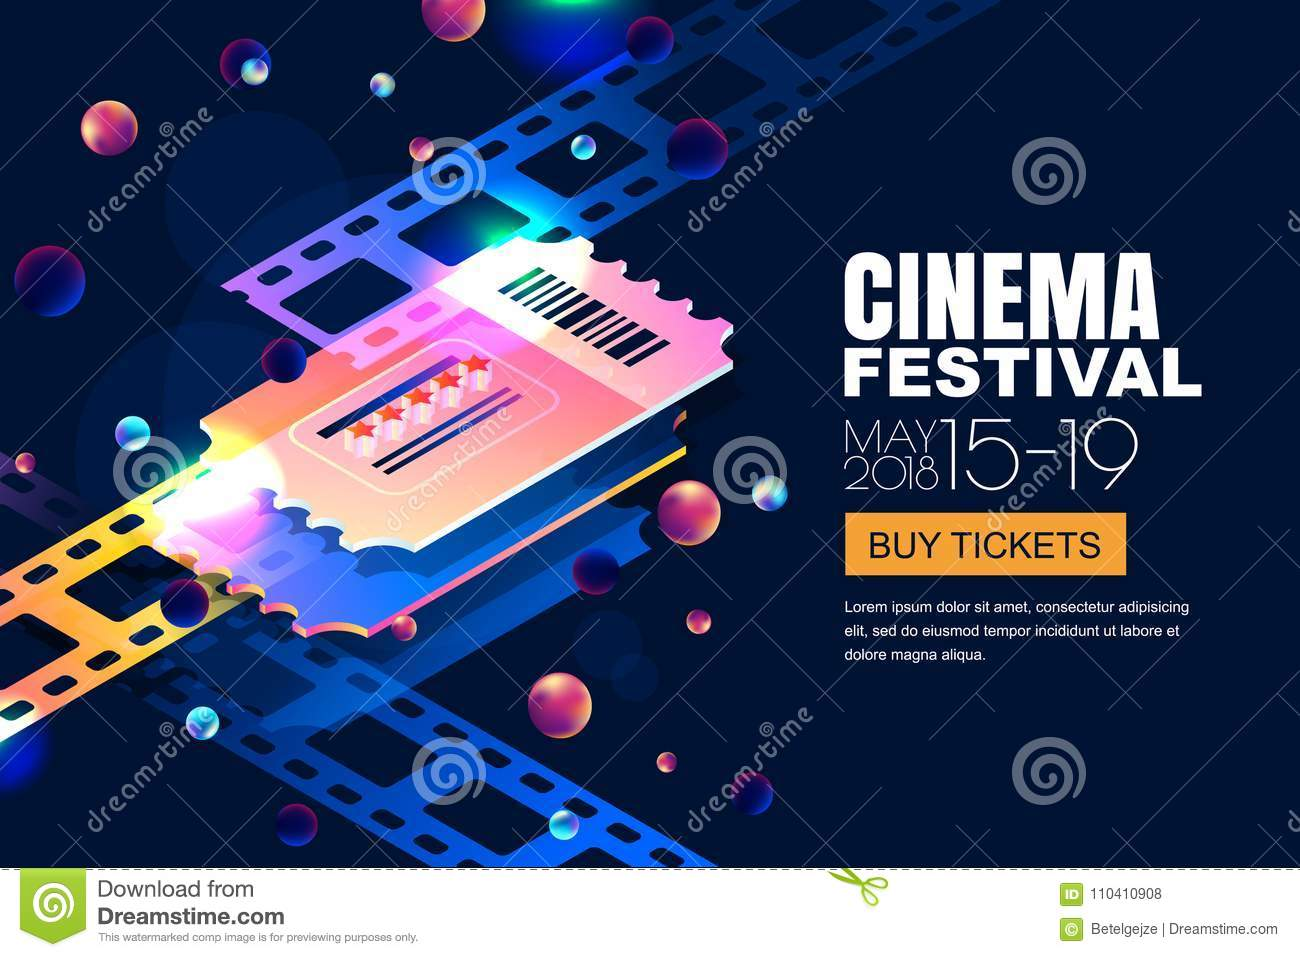 Vector glowing neon cinema festival banner. Cinema tickets in 3d isometric style on abstract night cosmic sky background